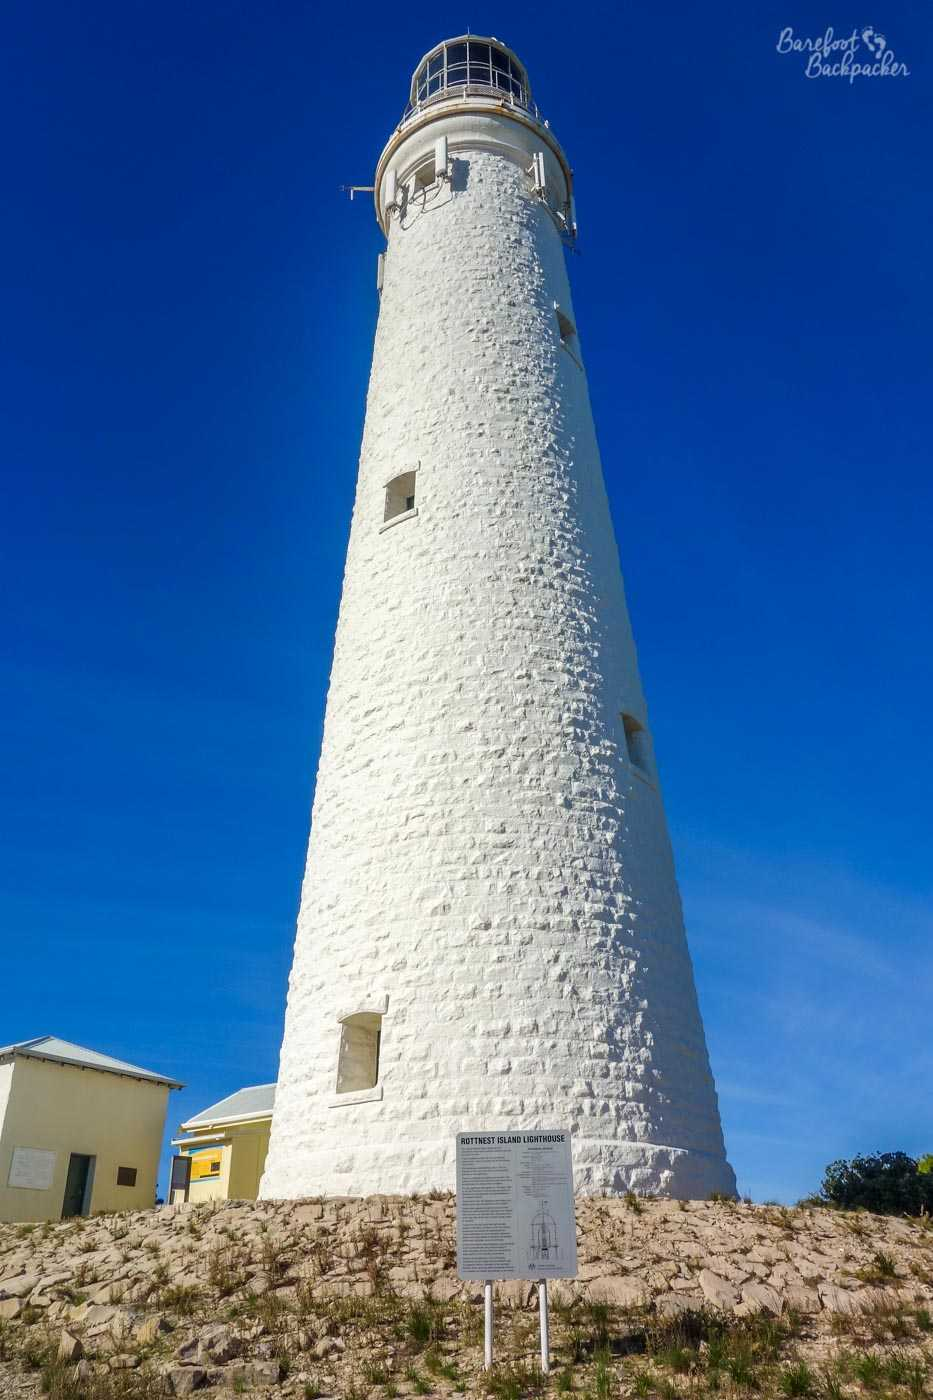 Close-up view of Wadjemup lighthouse; a large white cylinder standing bright against a clear dark blue sky.